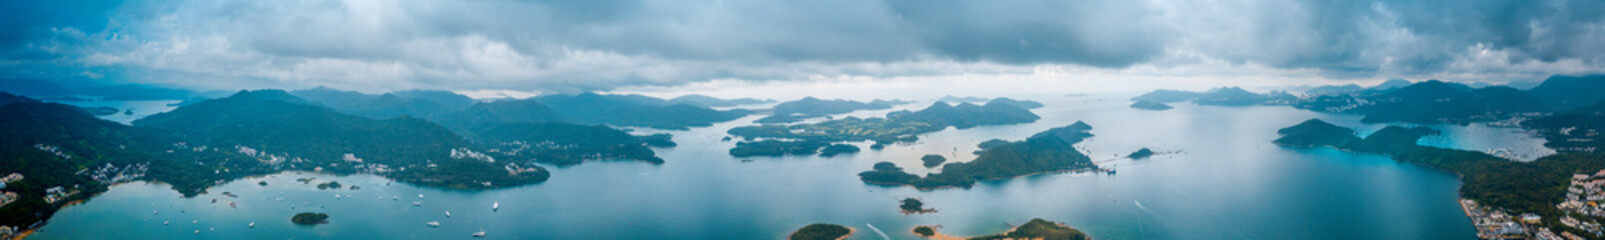 Panoramic aerial view of Sai Kung, Hong Kong.